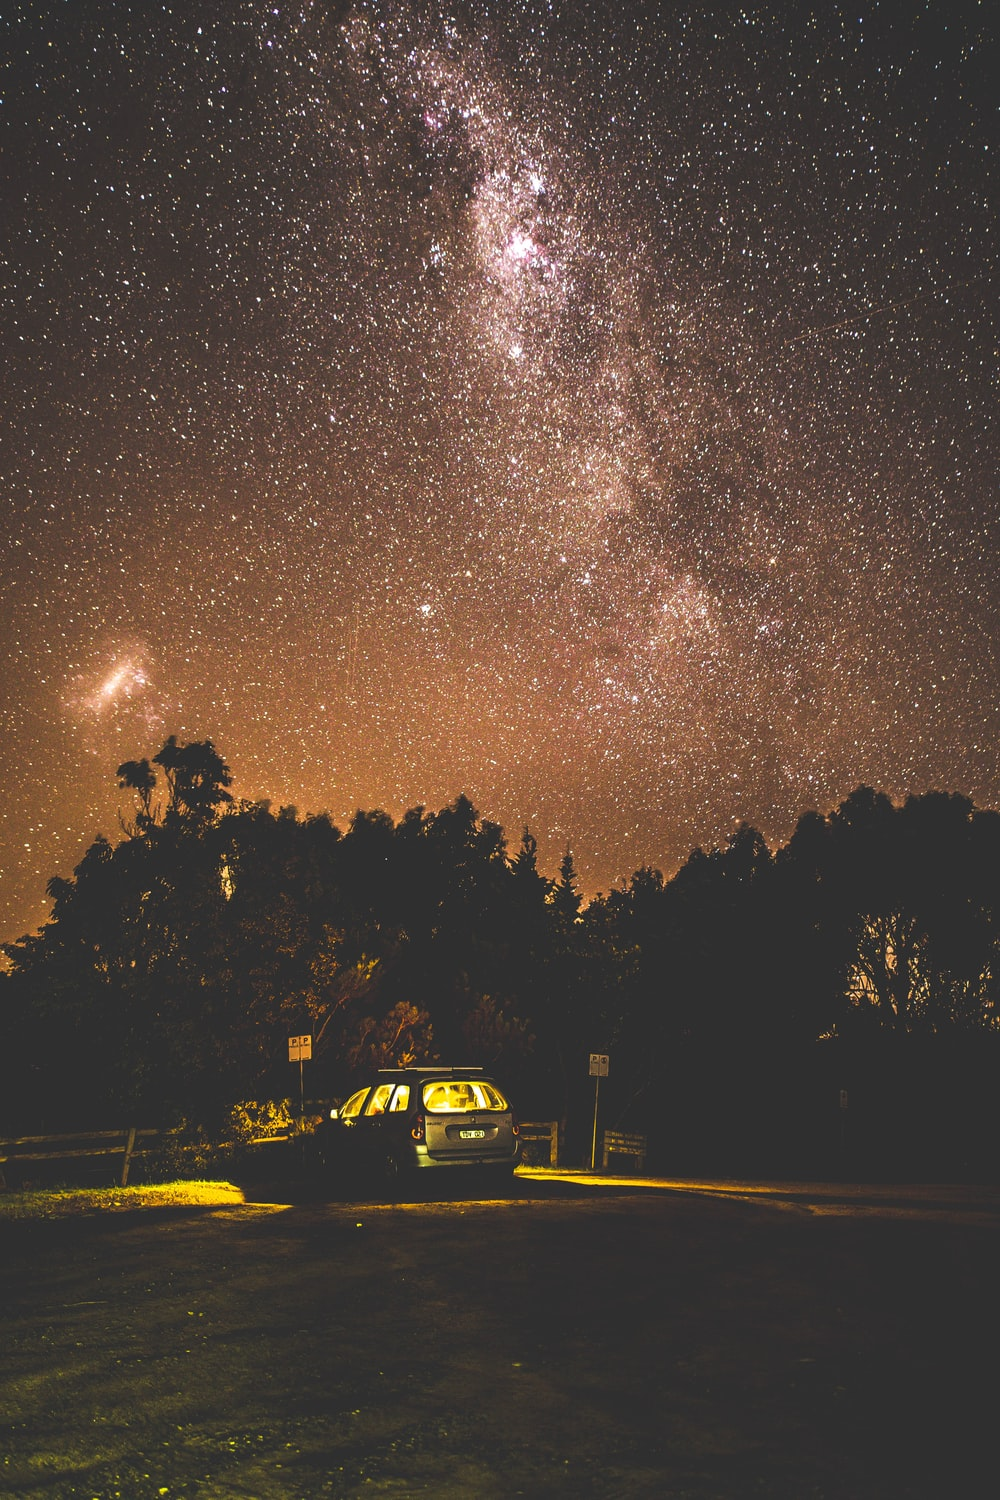 milky way over silhouette trees and car